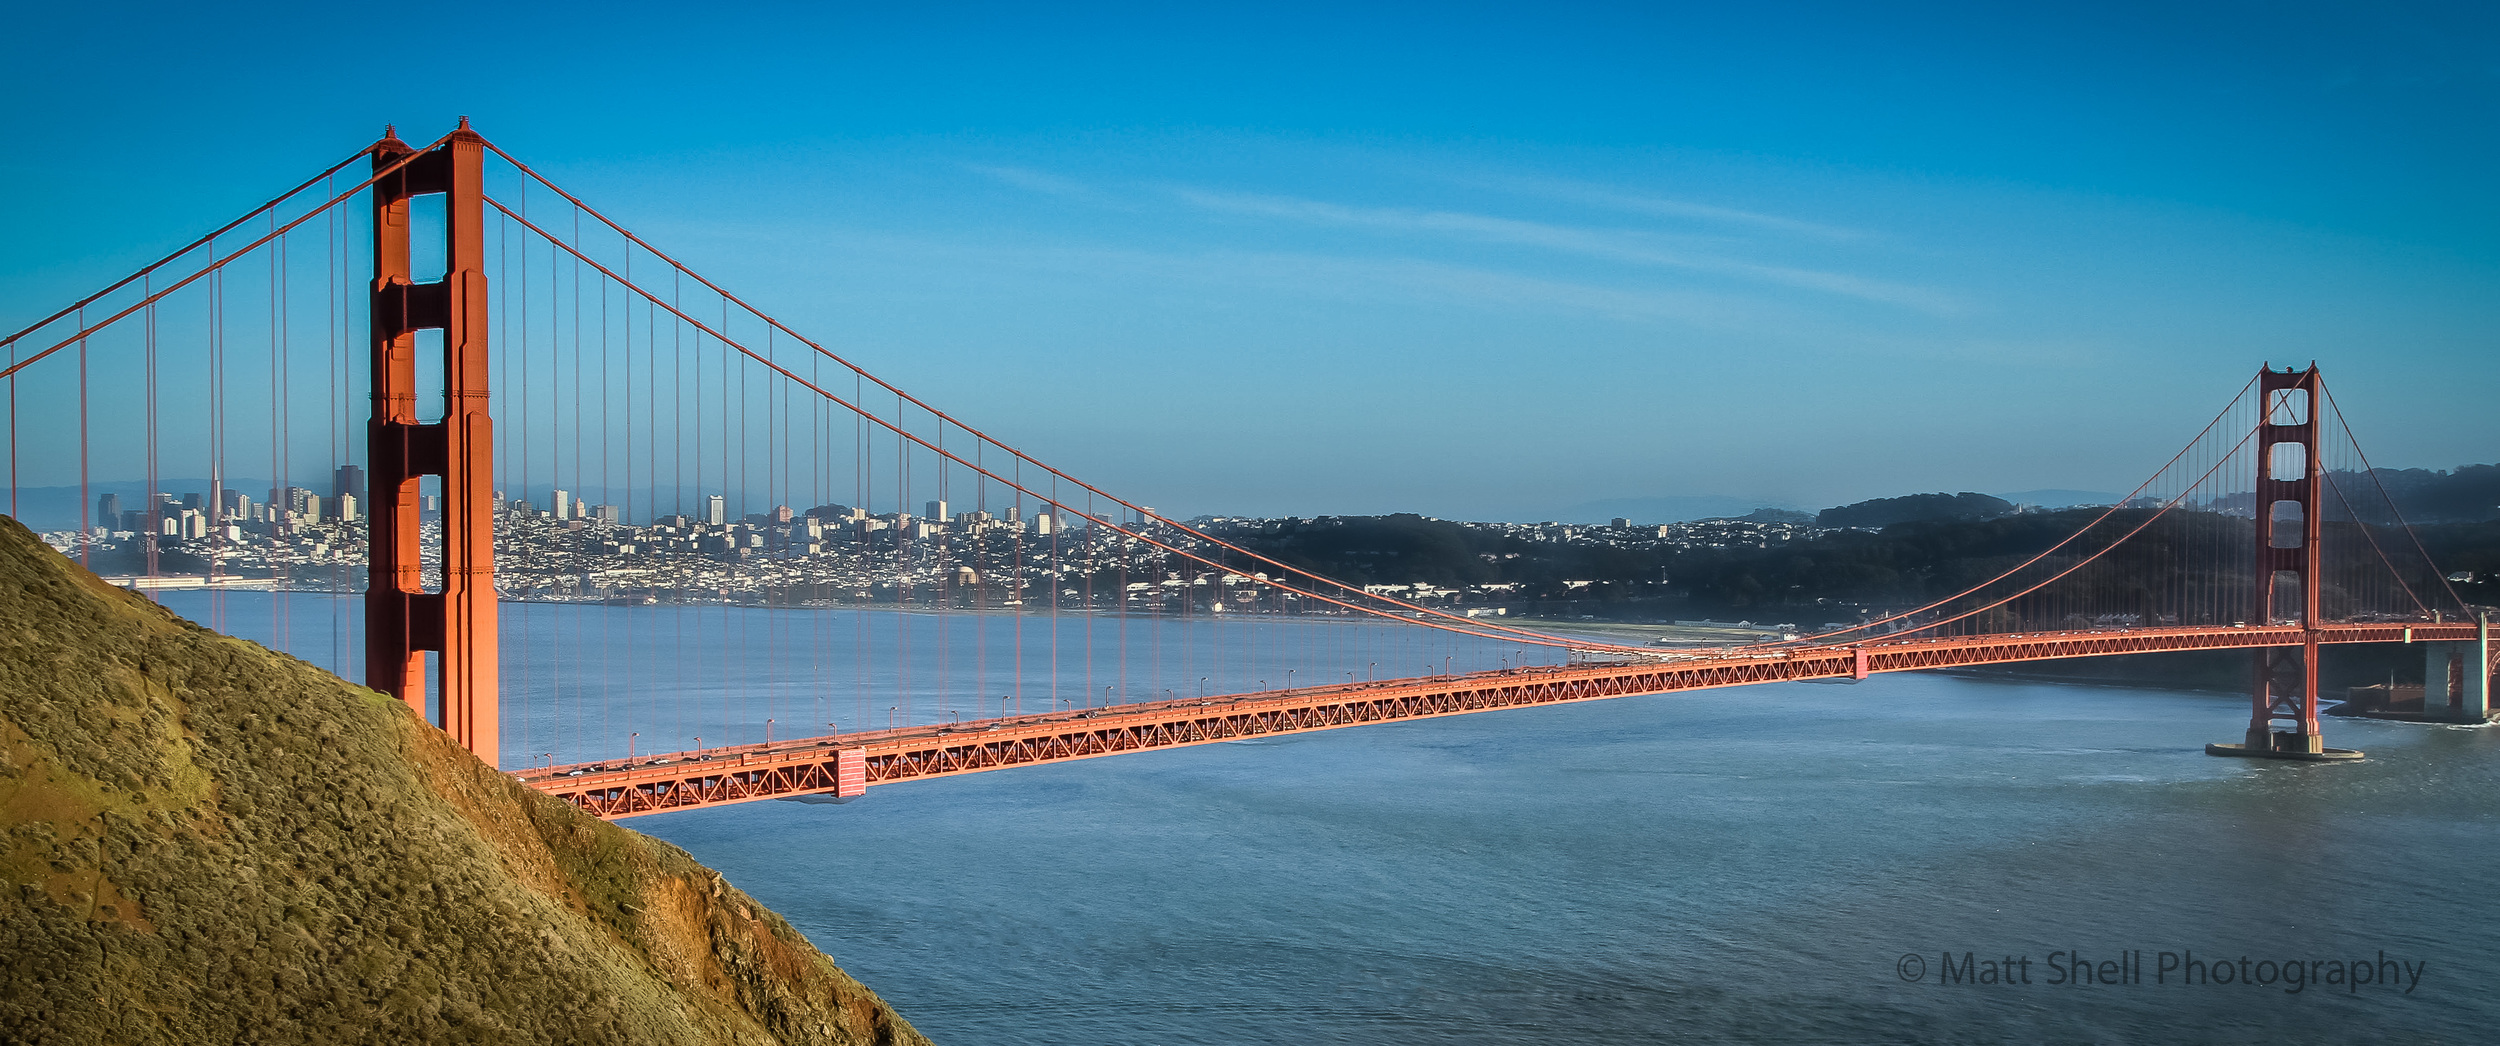 Everybody takes this shot of the bridge. Try something different!